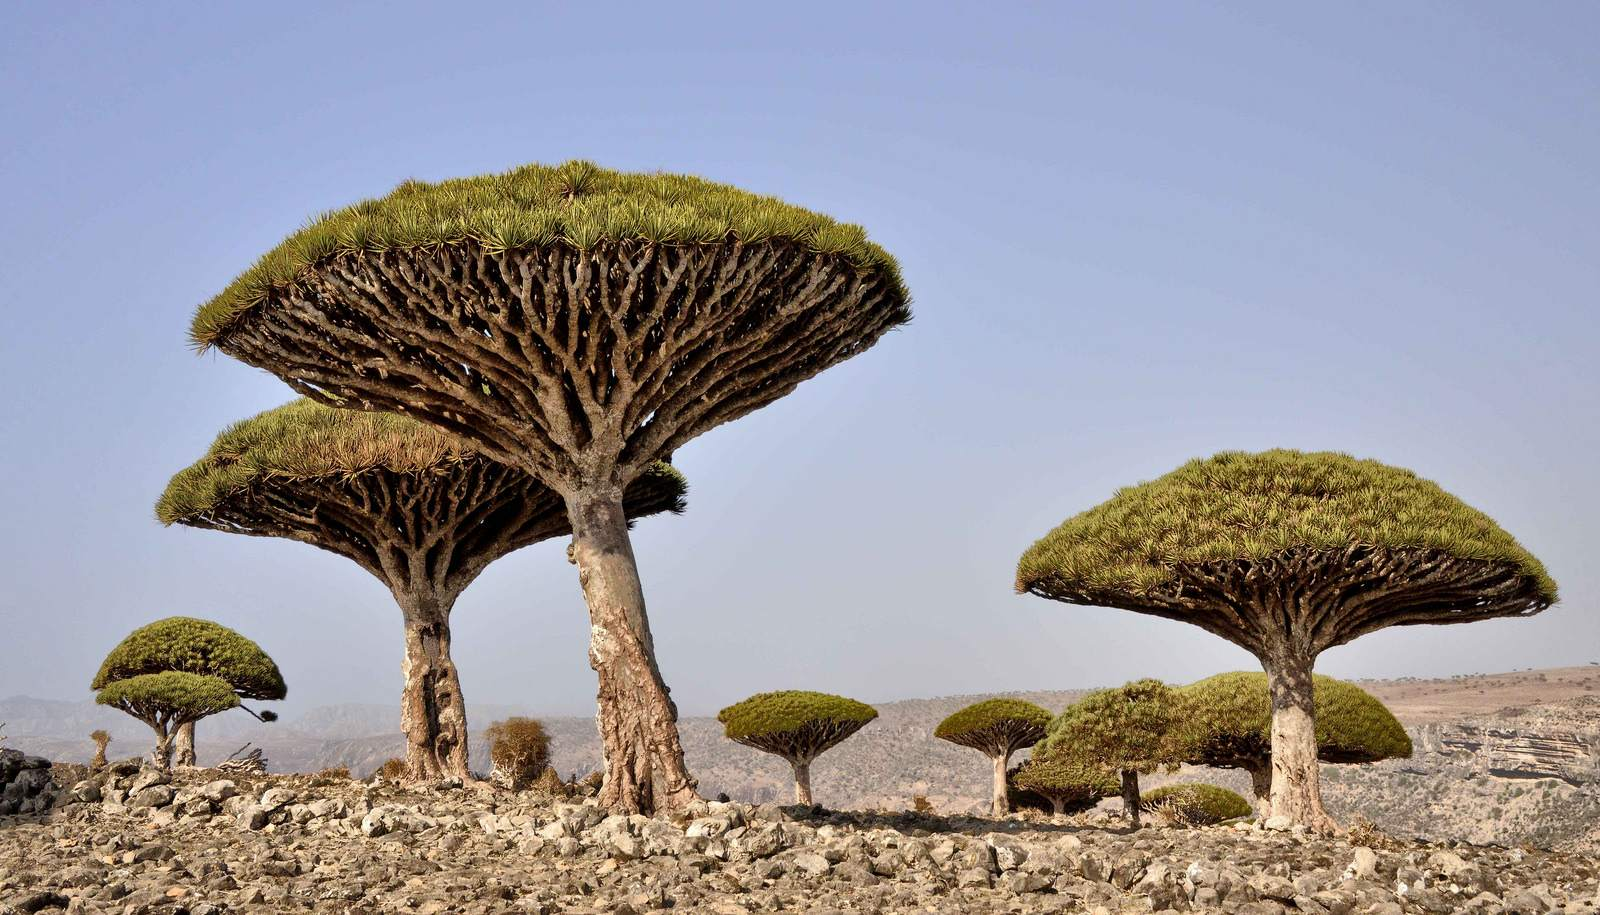 socotra1 Dragons Blood Tree at Socotra Island, Yemen